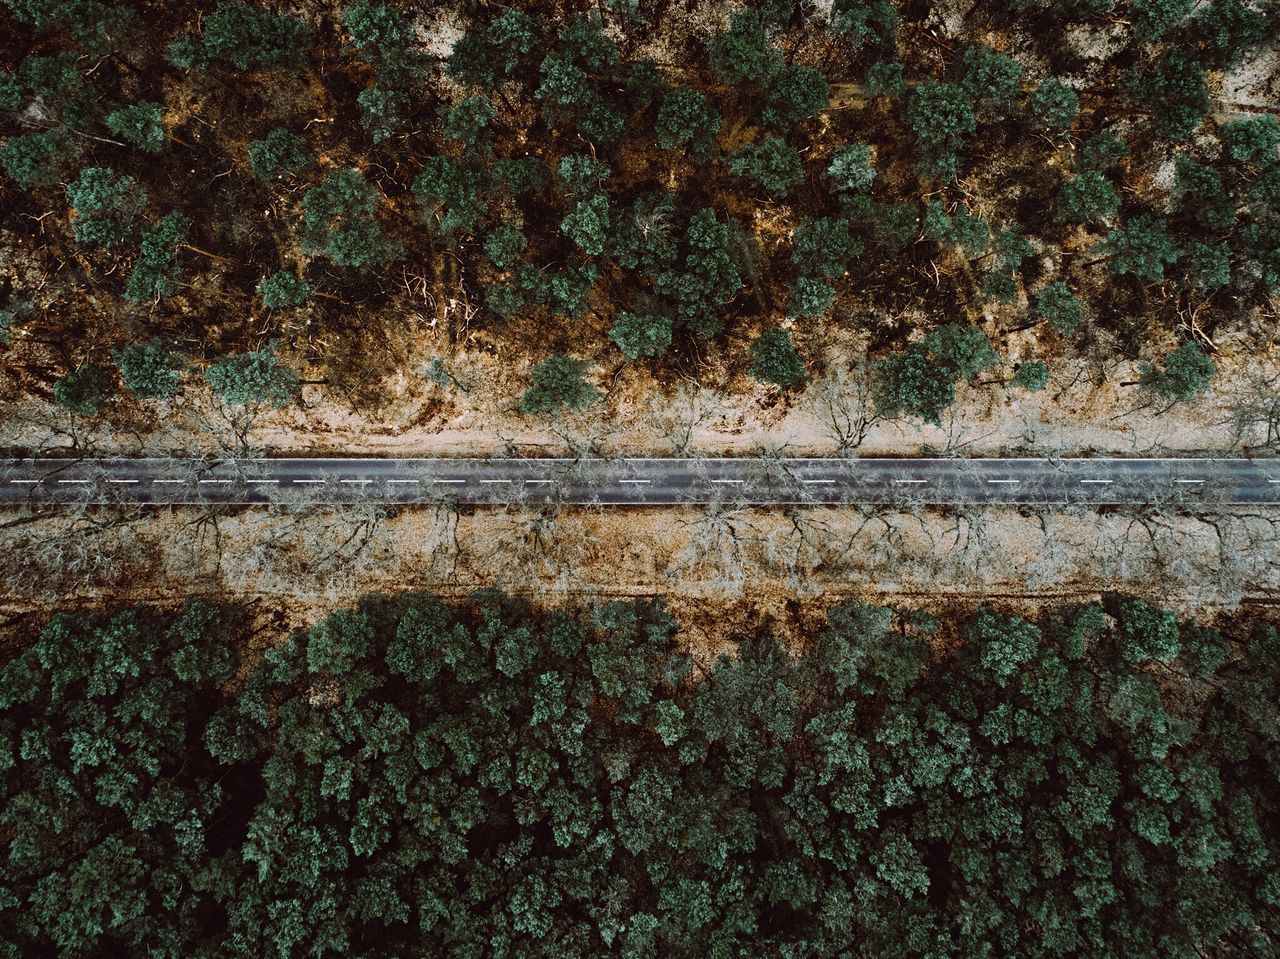 - German Road - Flying High Perspective Bird Perspective No People Full Frame Outdoors Nature Day Growth Tree Close-up Backgrounds Ivy Architecture Road Road Germany EyeEm Best Shots EyeEm Best Edits Landscape Forest EyeEm Nature Lover Beauty Nature From Above